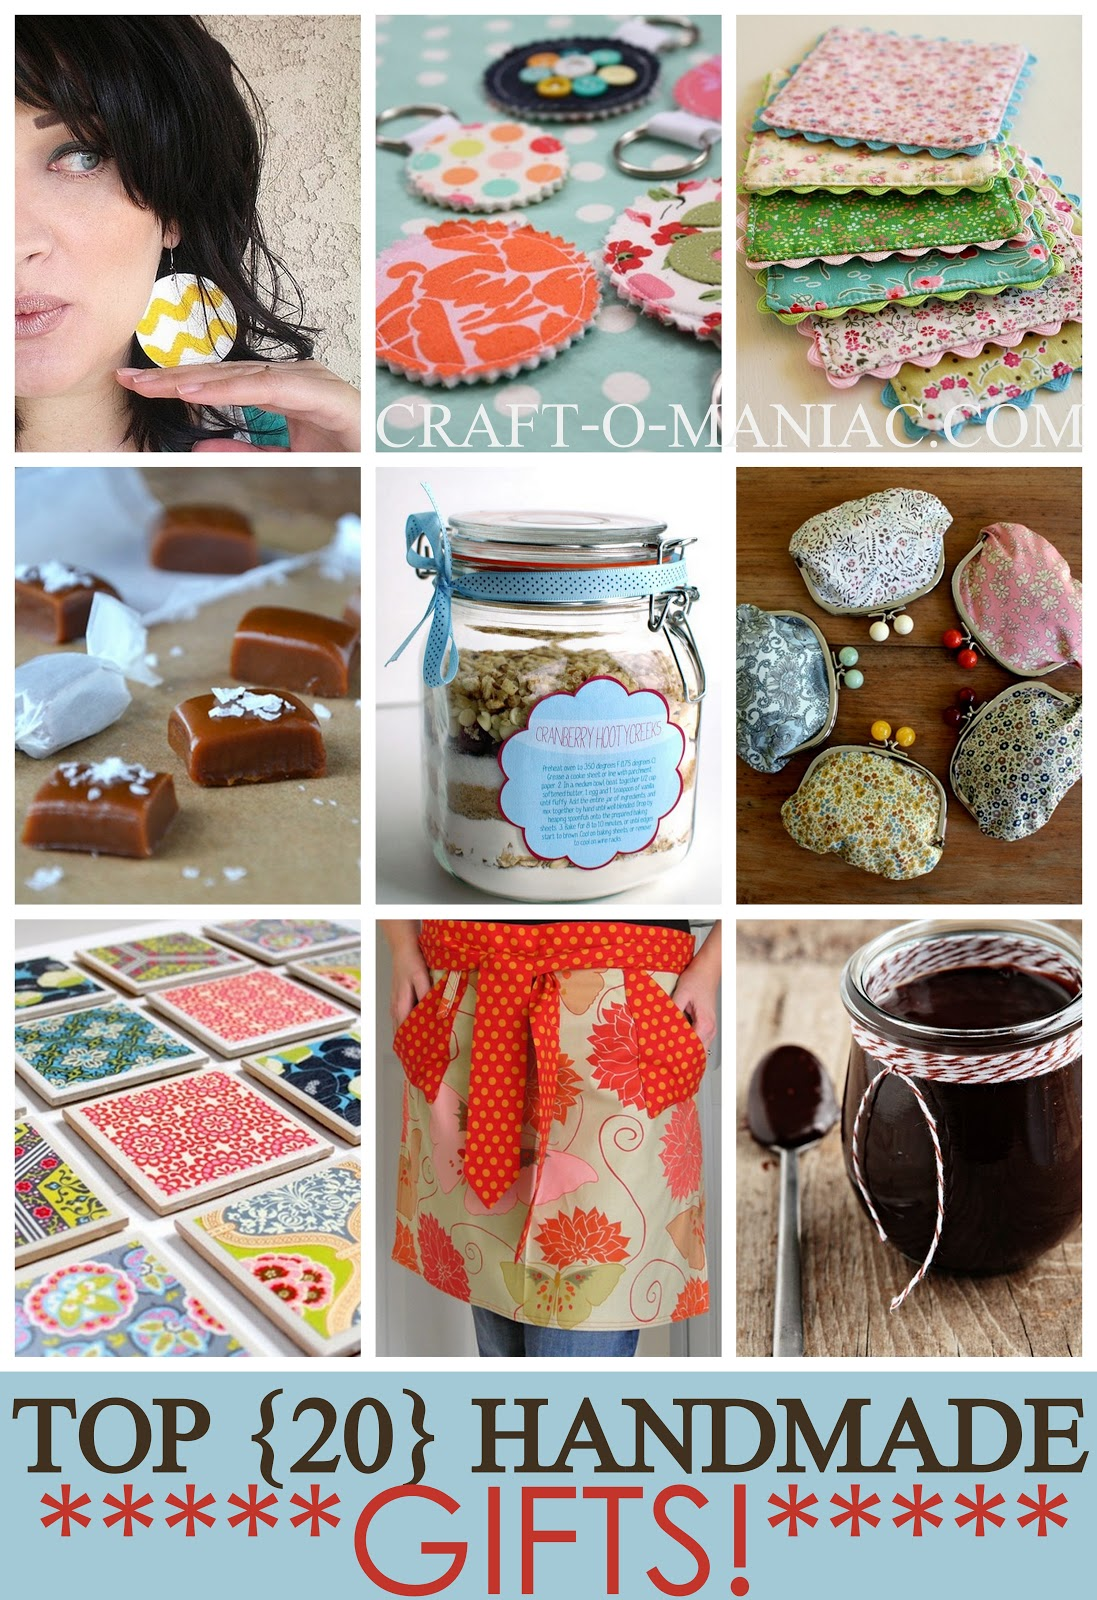 Top 20 handmade gifts for New handmade craft ideas